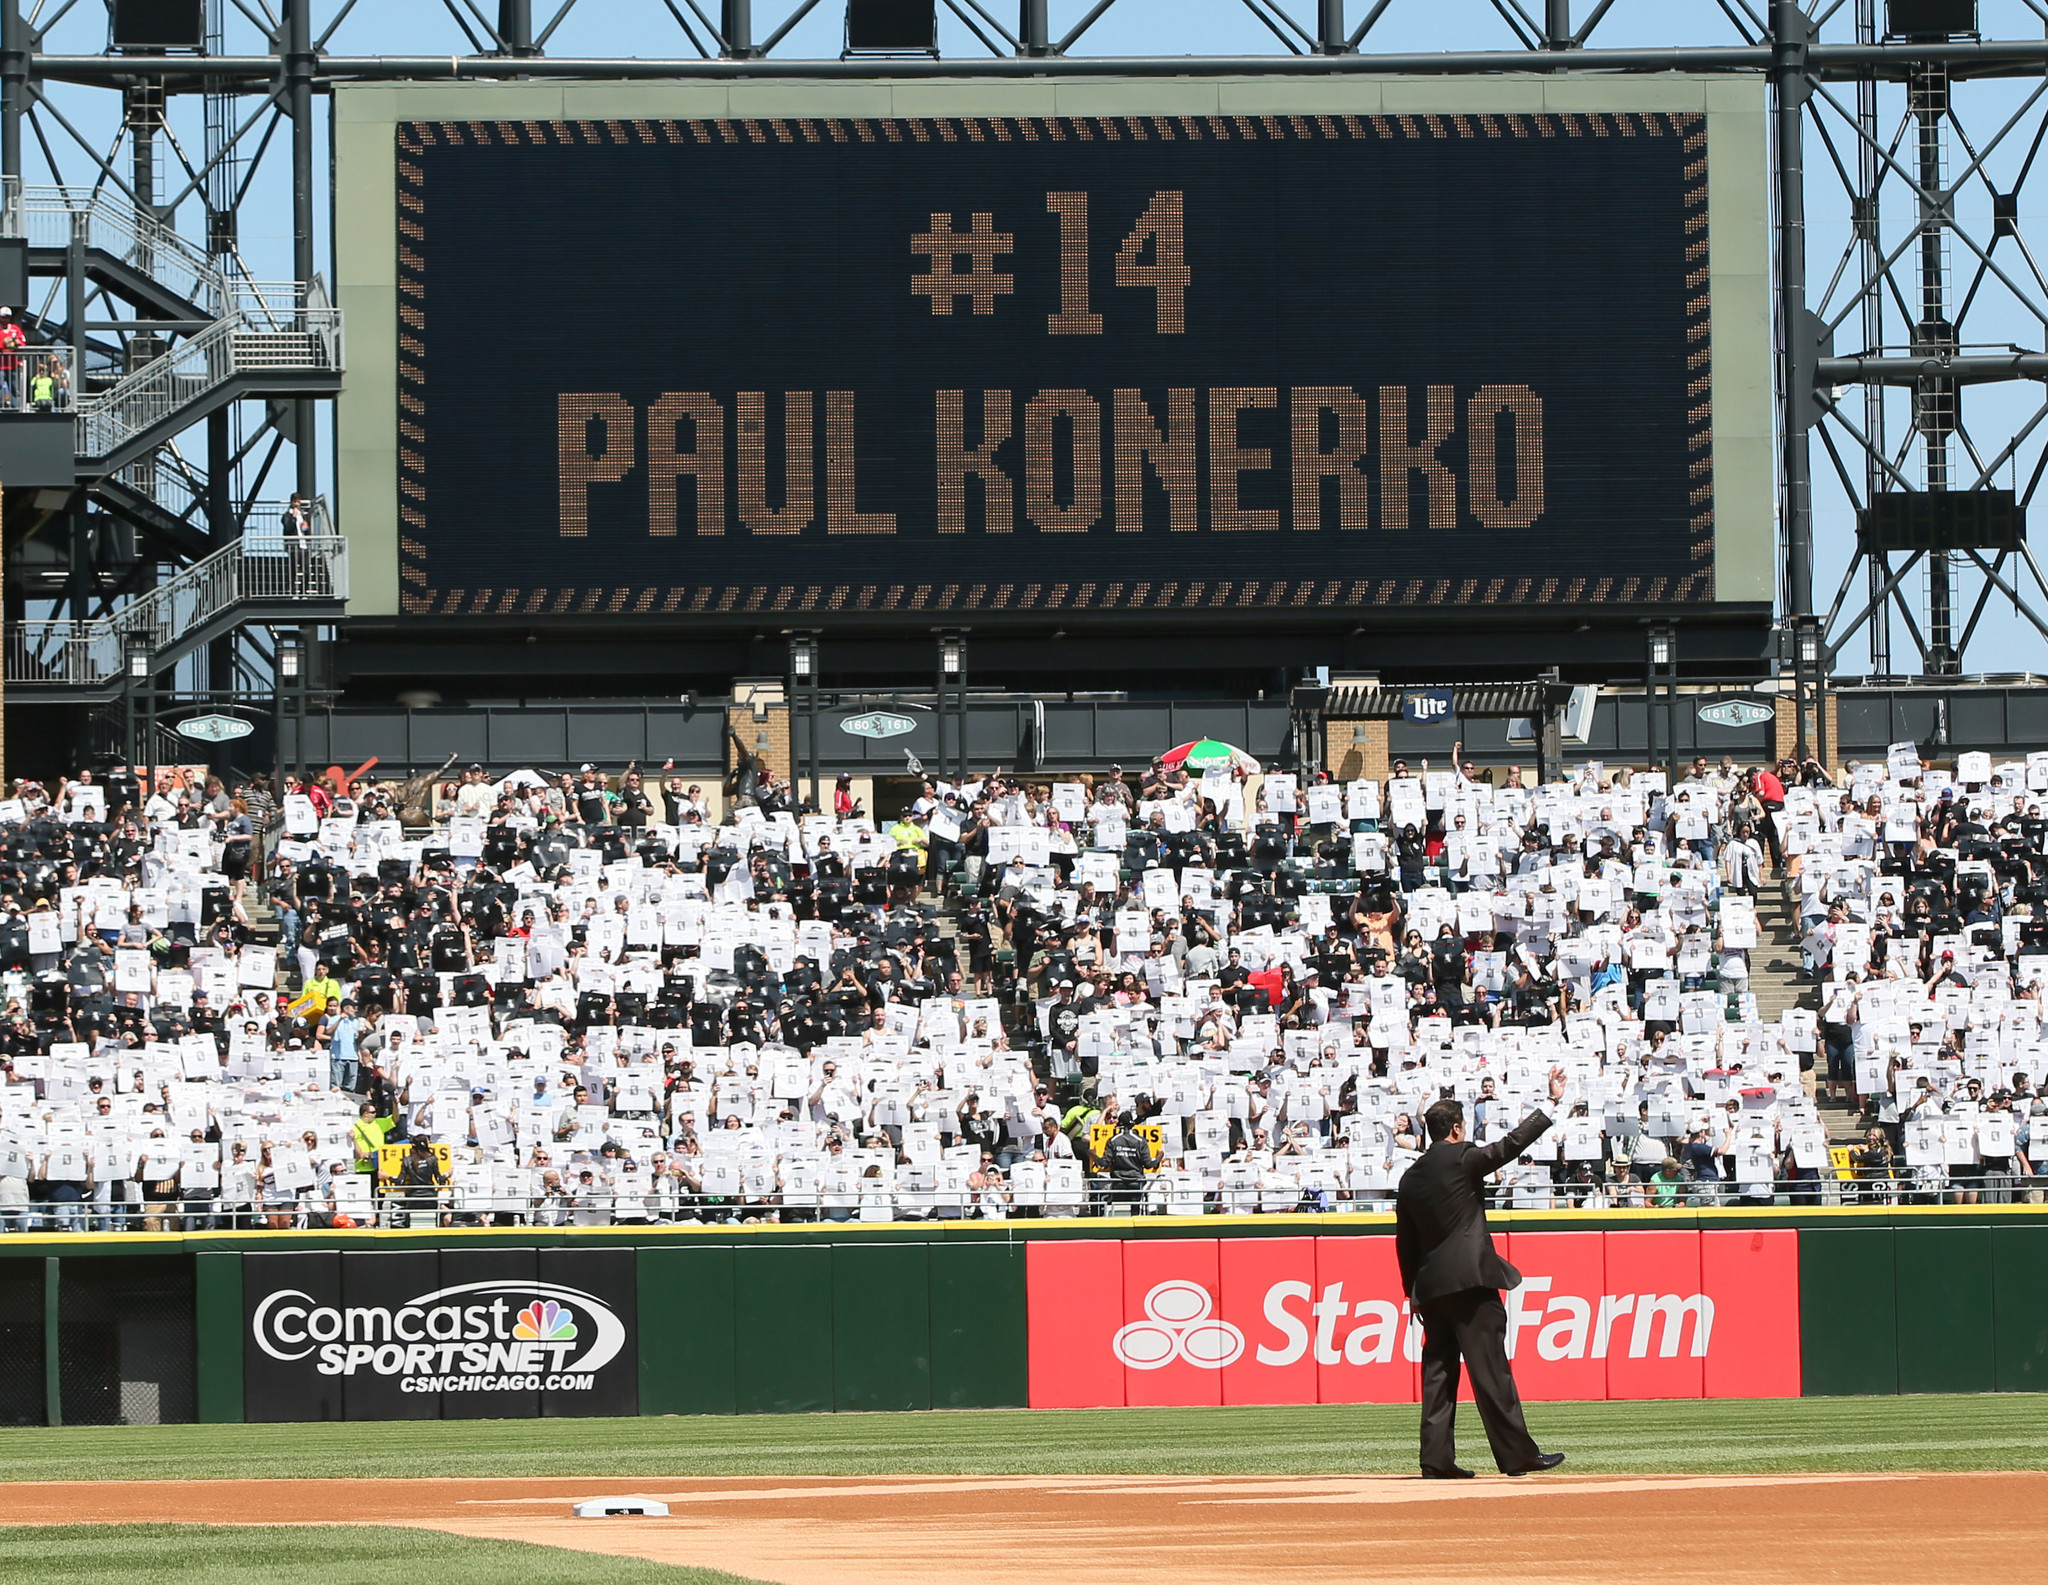 Konerko's Chicago legacy more than just numbers